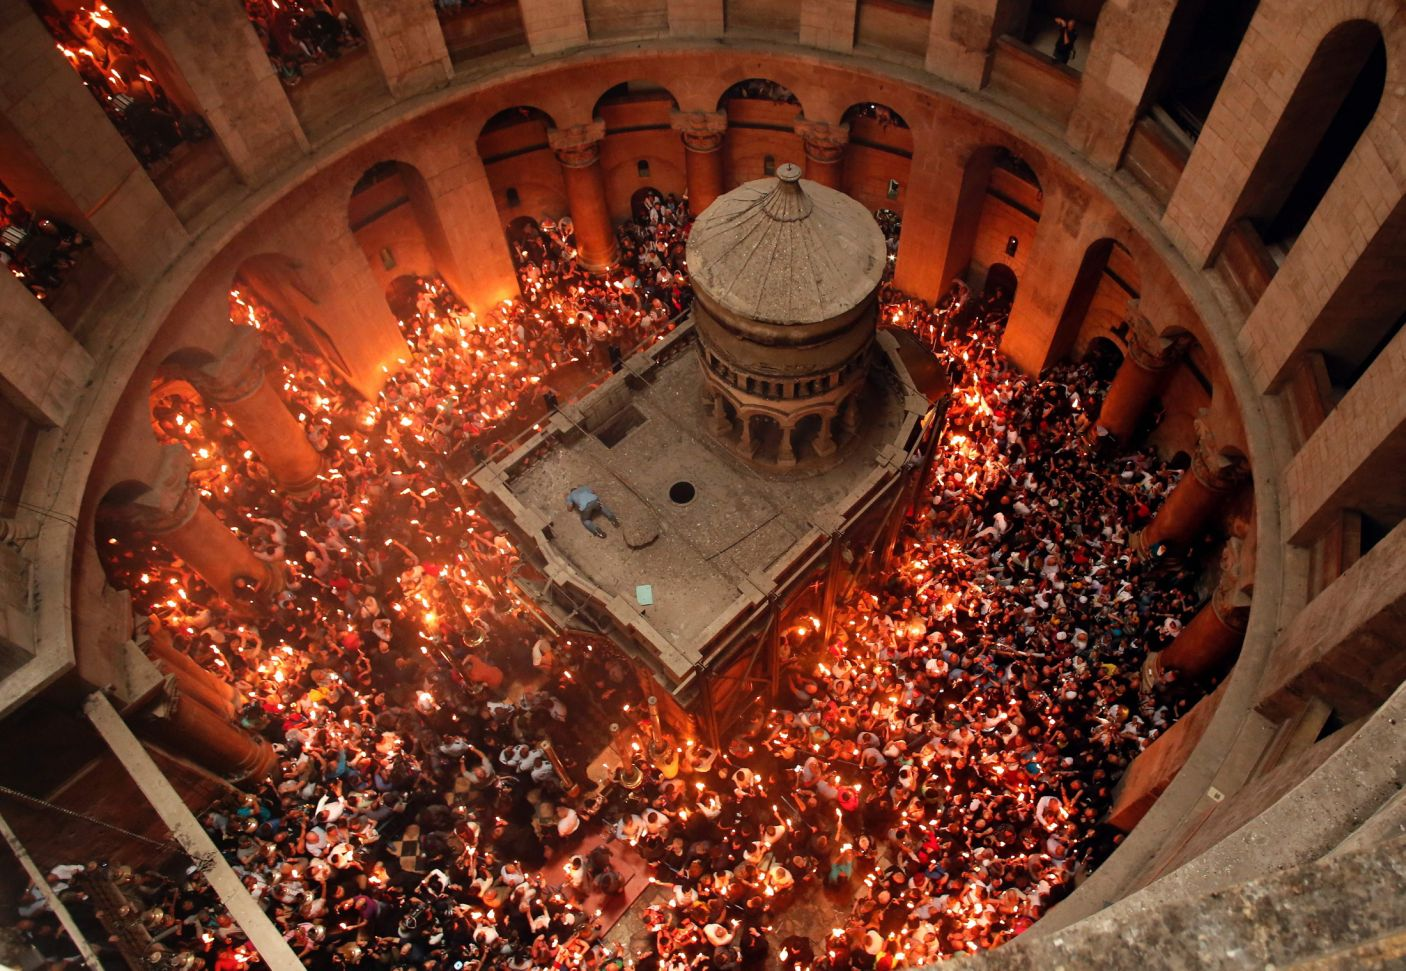 Holy Fire ceremony is held in the rotunda of the Church around the Tomb of Christ.